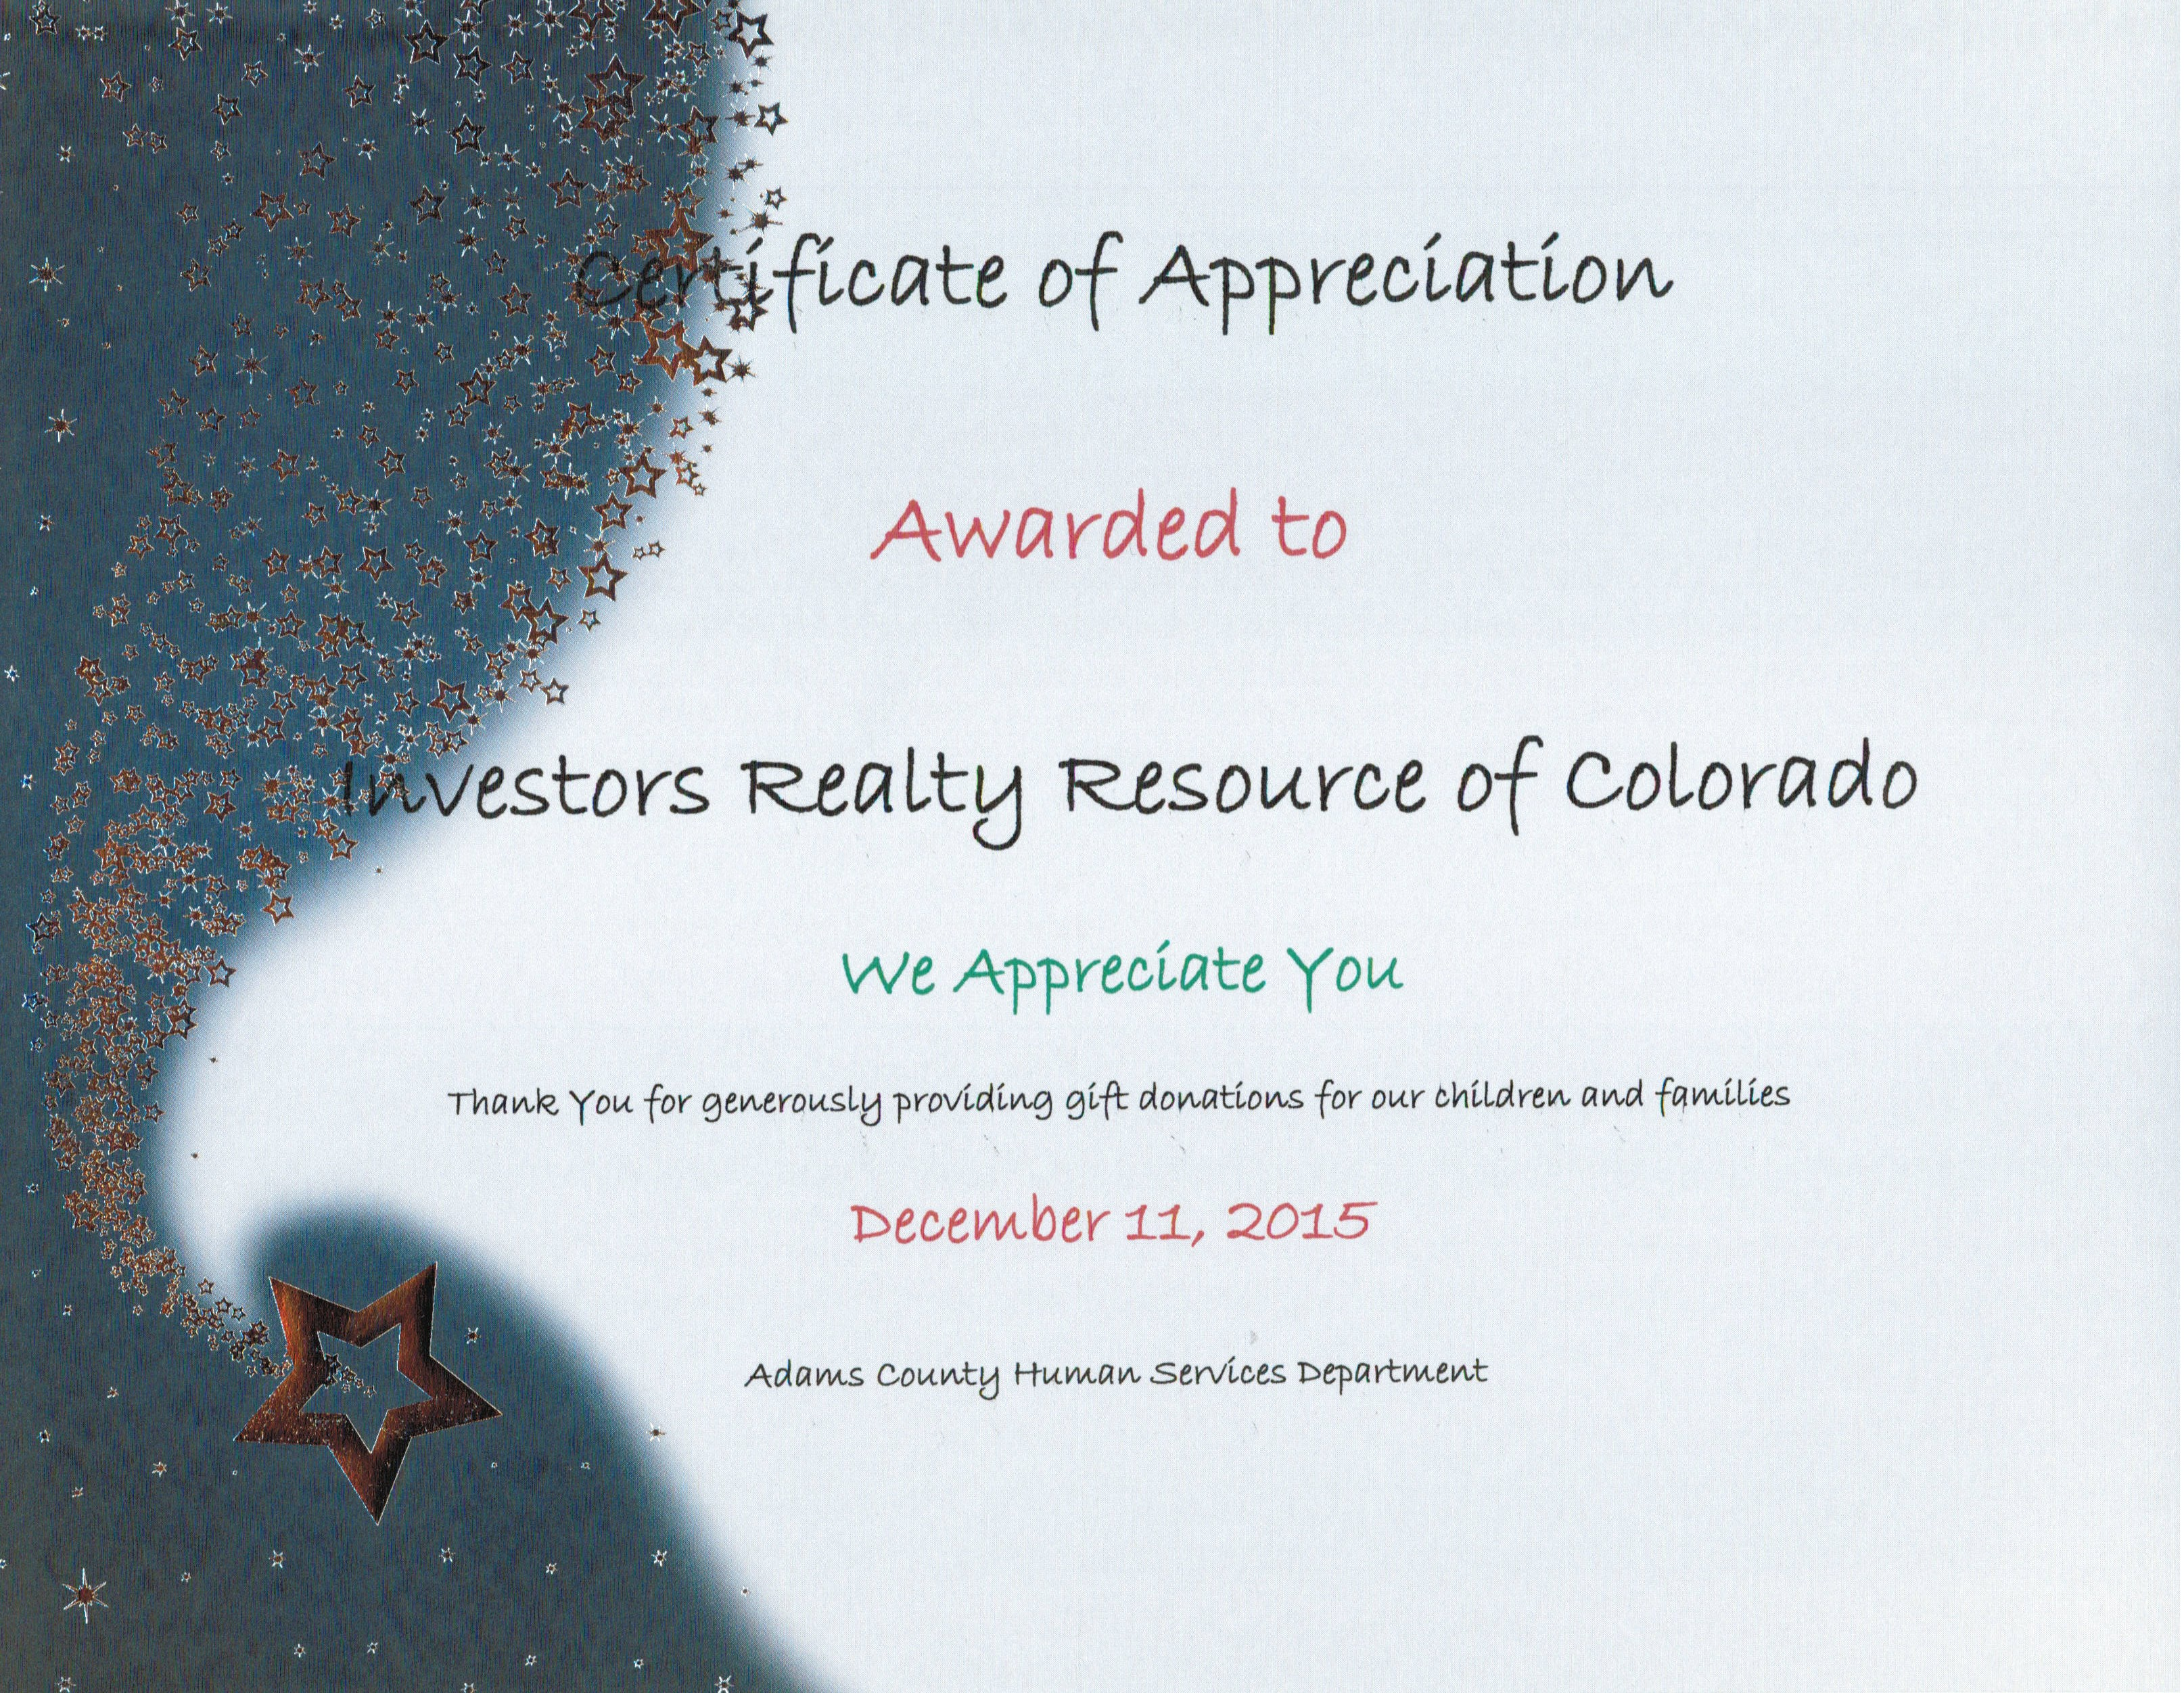 About IRROC - IRROC: Investors Realty Resource of Colorado